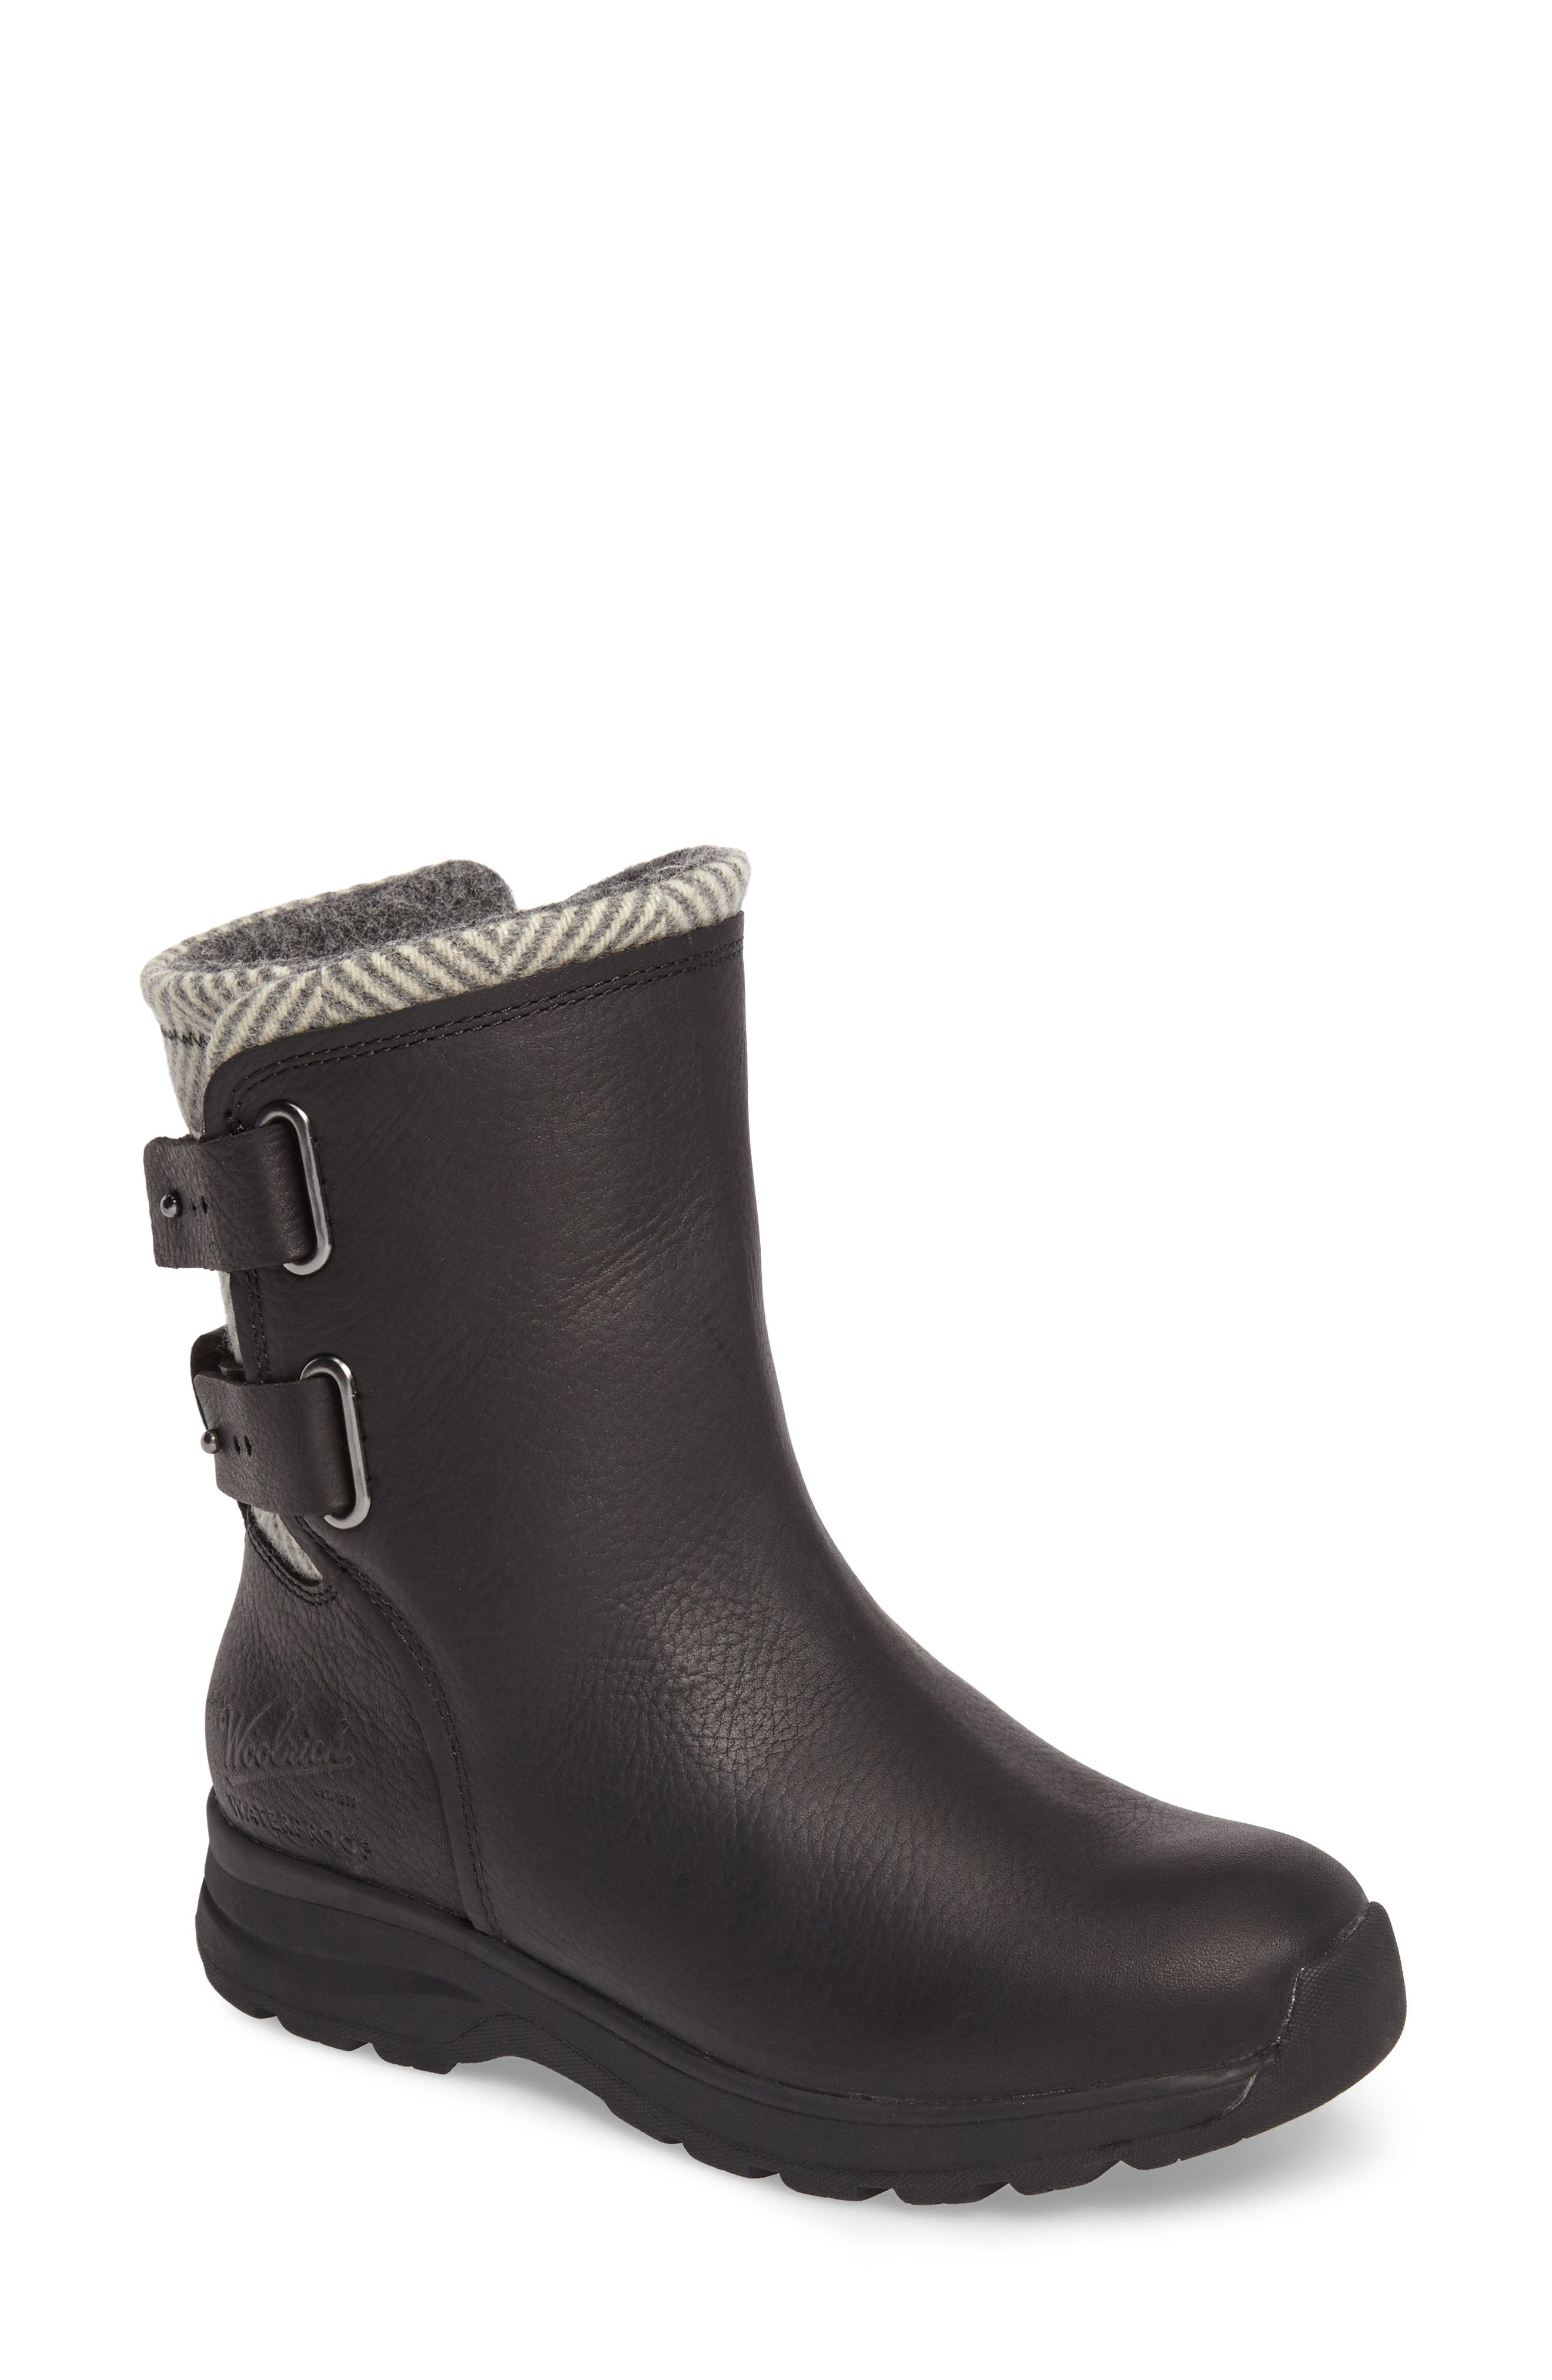 Koosa Waterproof Boot,                         Main,                         color, Black Leather/ Herringbone